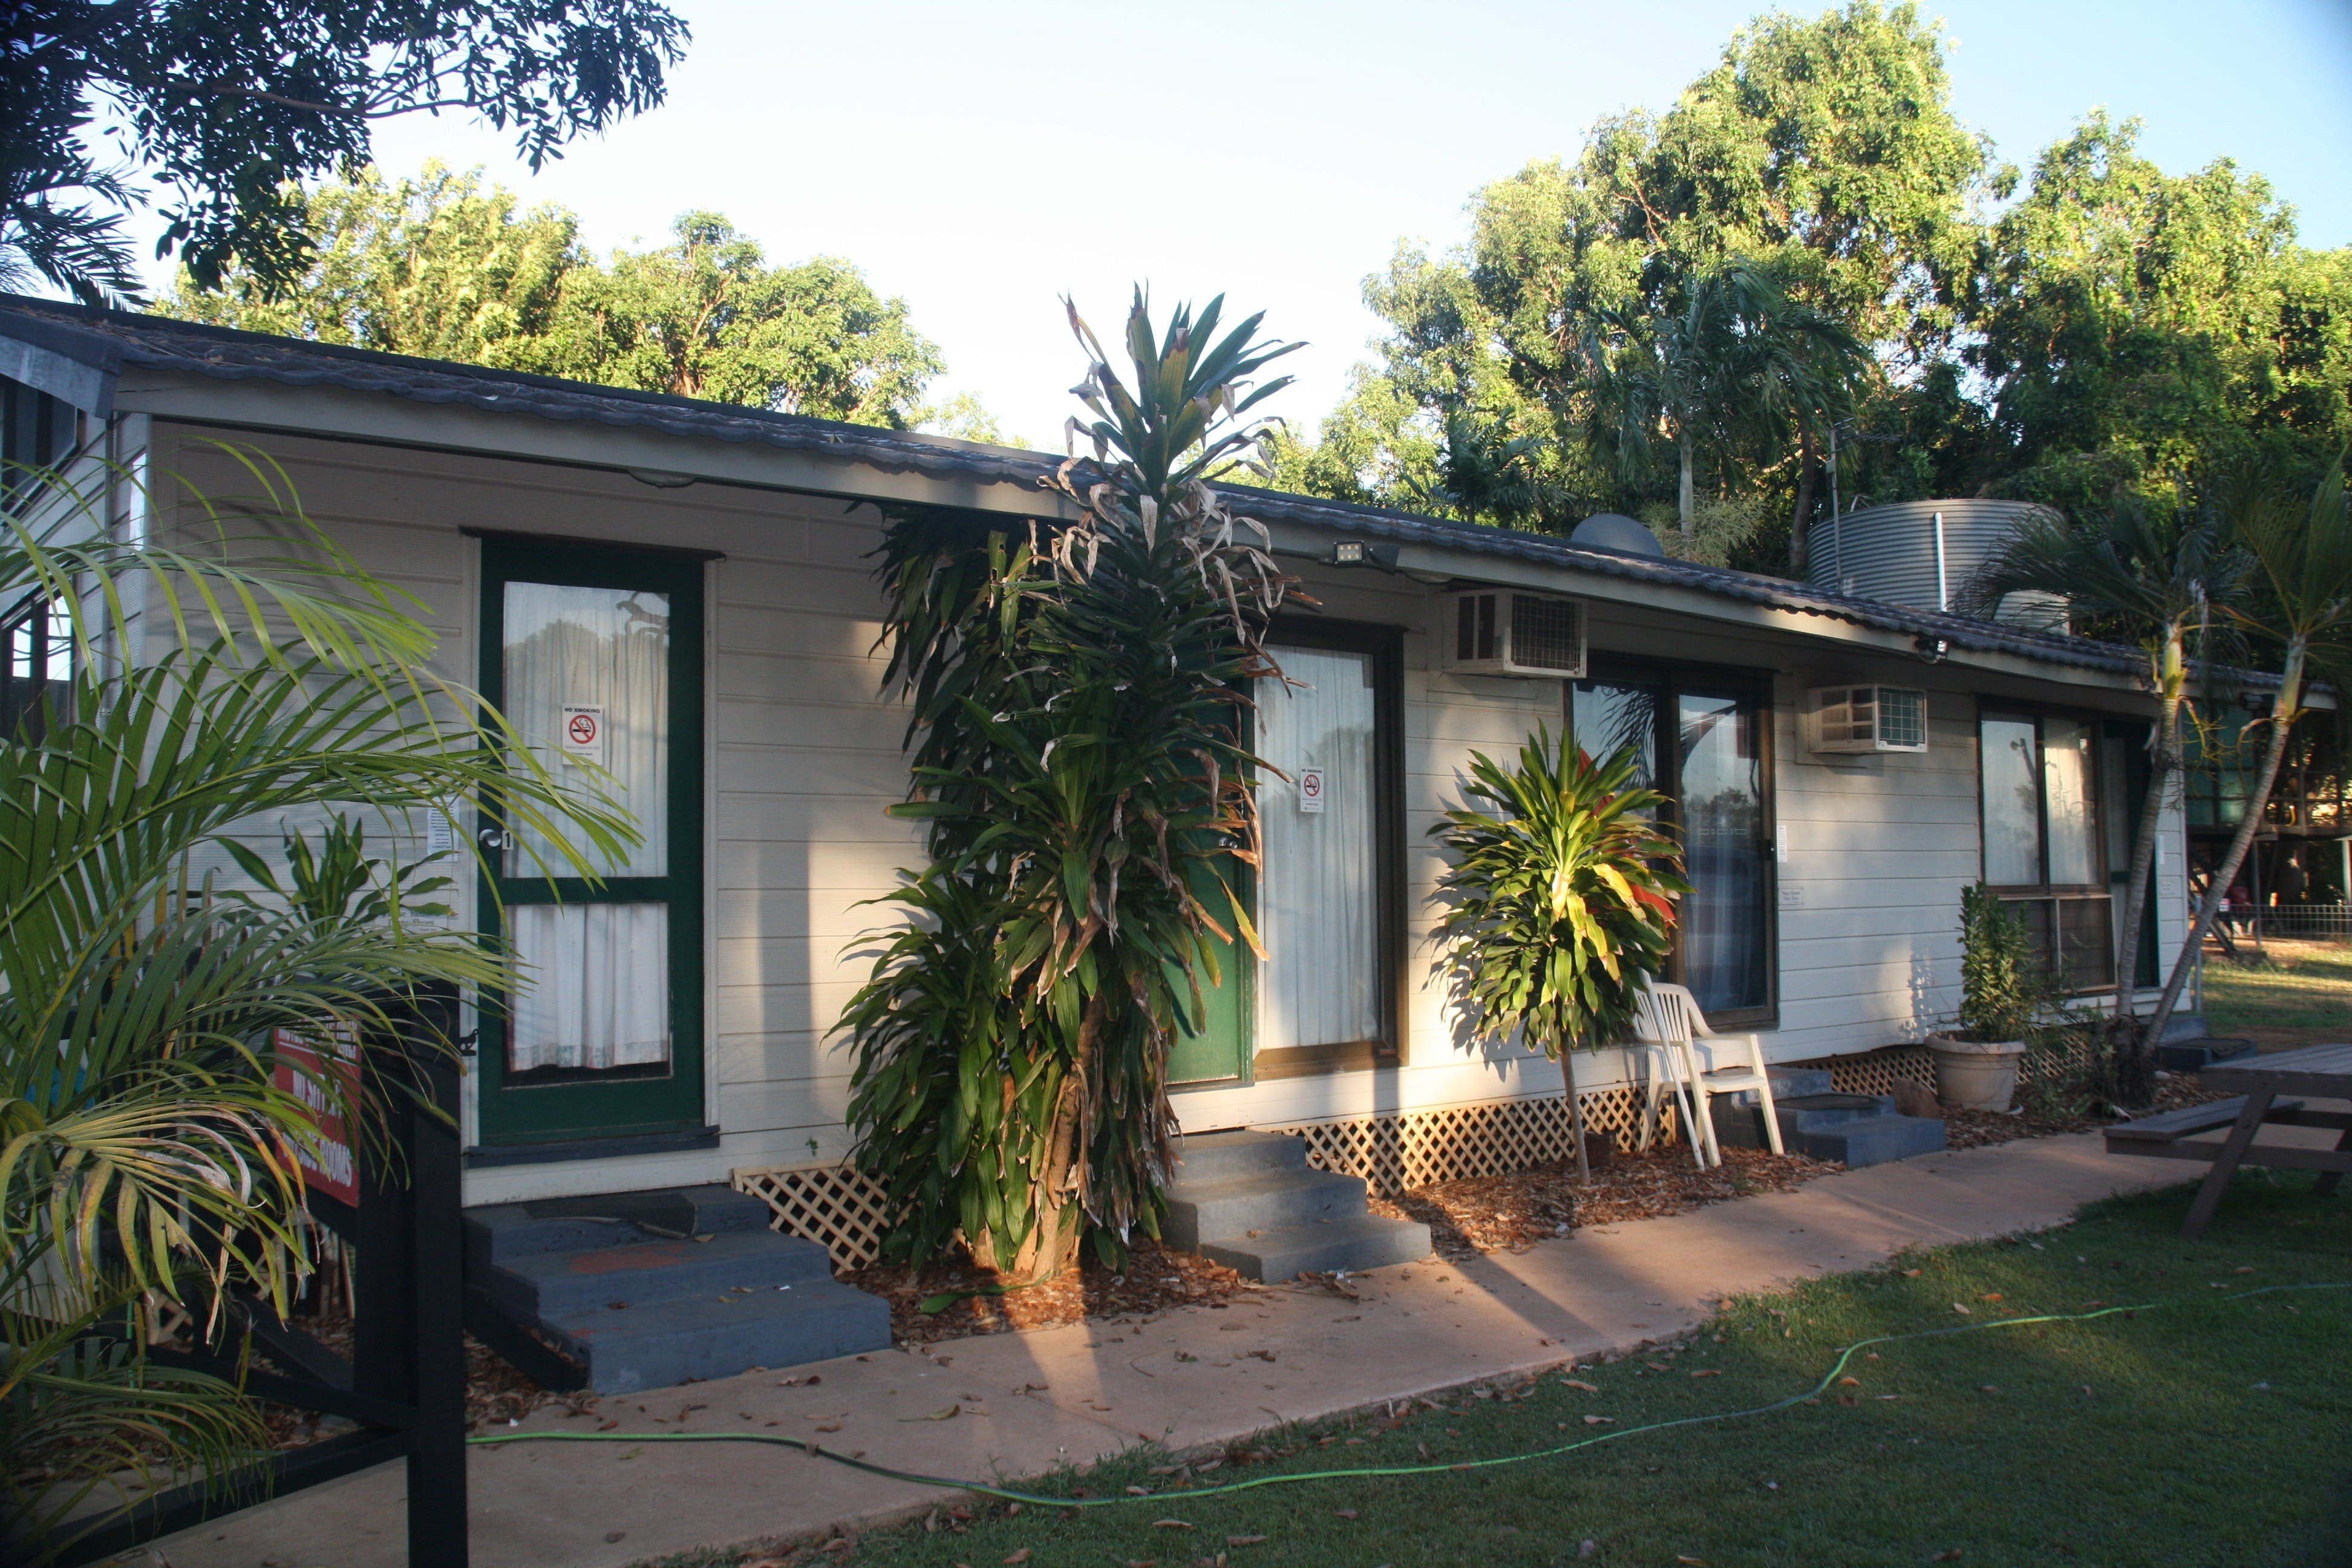 Daly River Roadside Inn - Broome Tourism